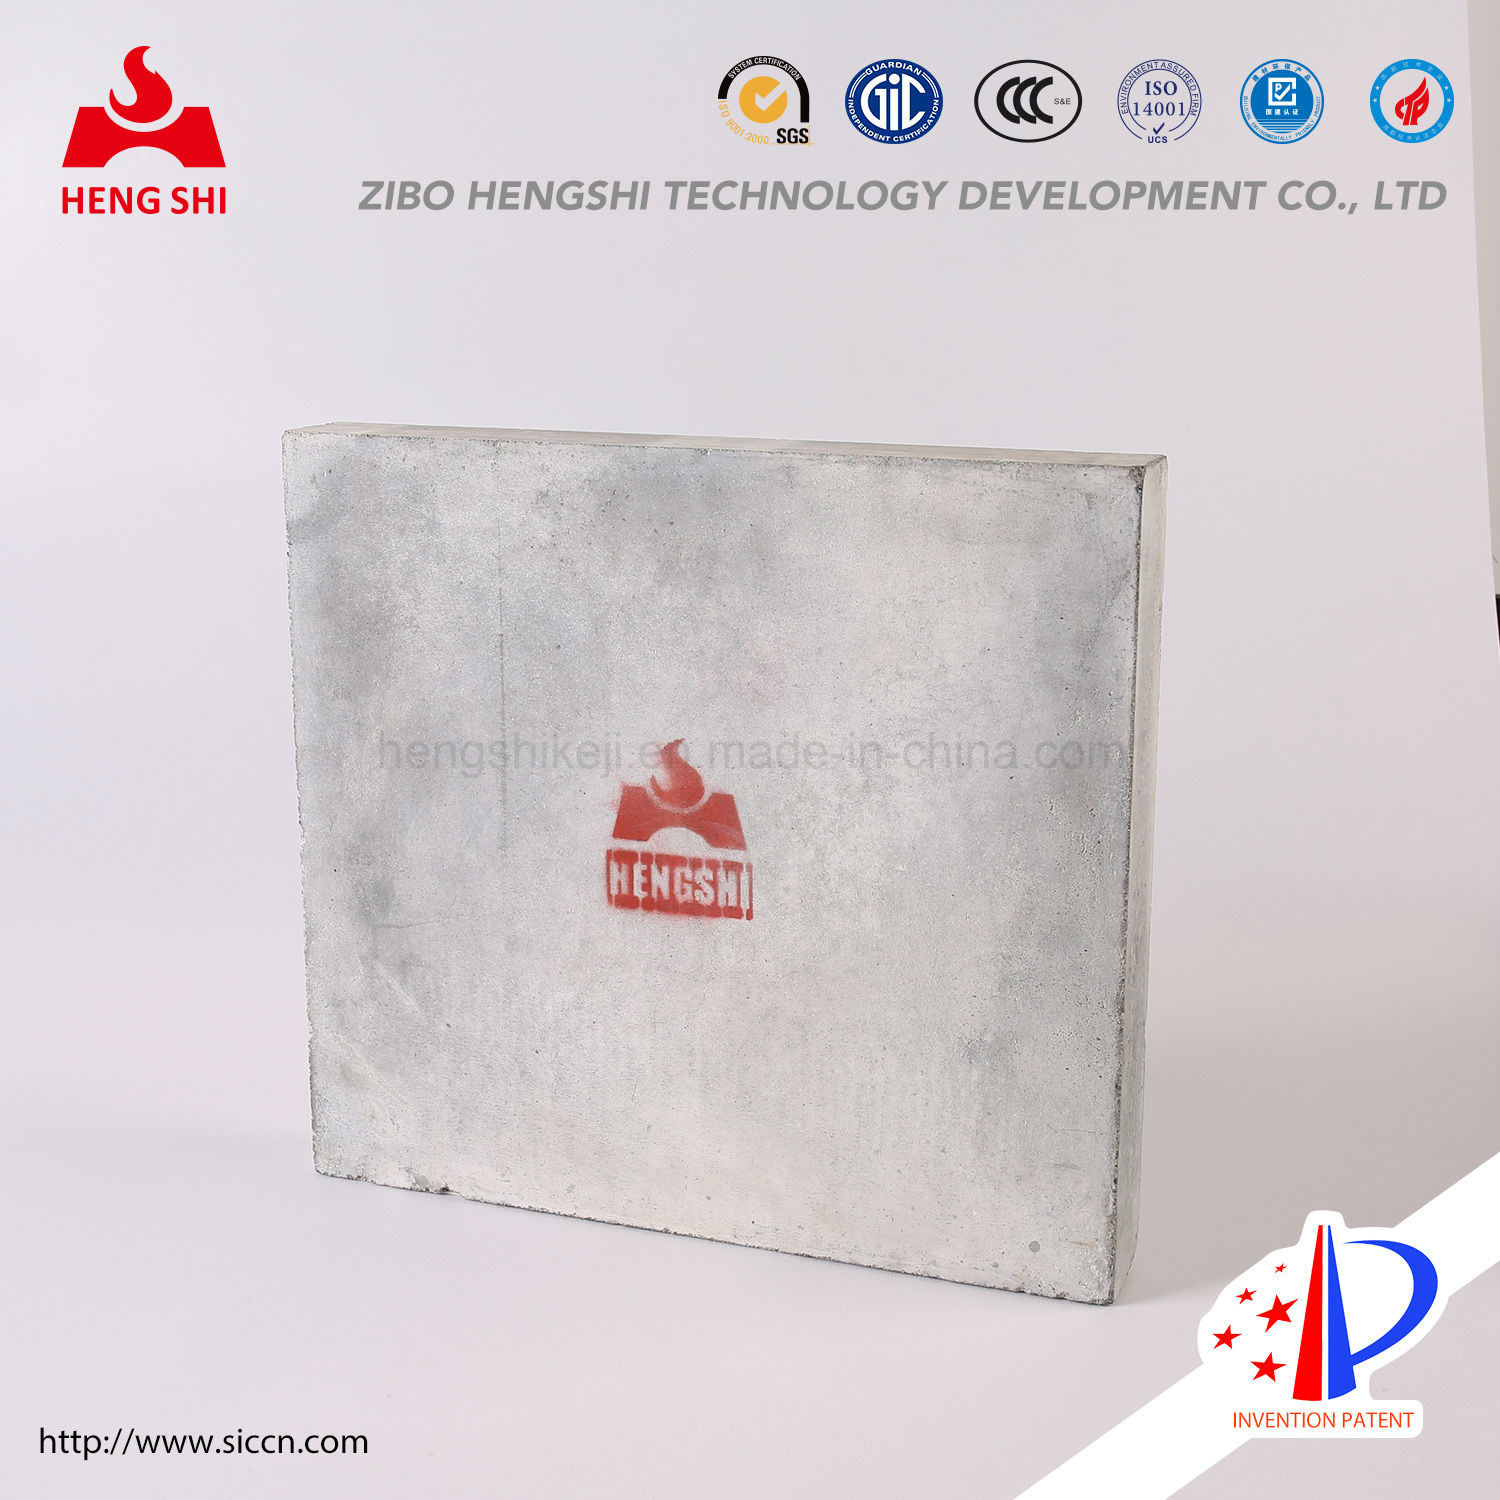 LG-8 Silicon Nitride Bonded Silicon Carbide Brick